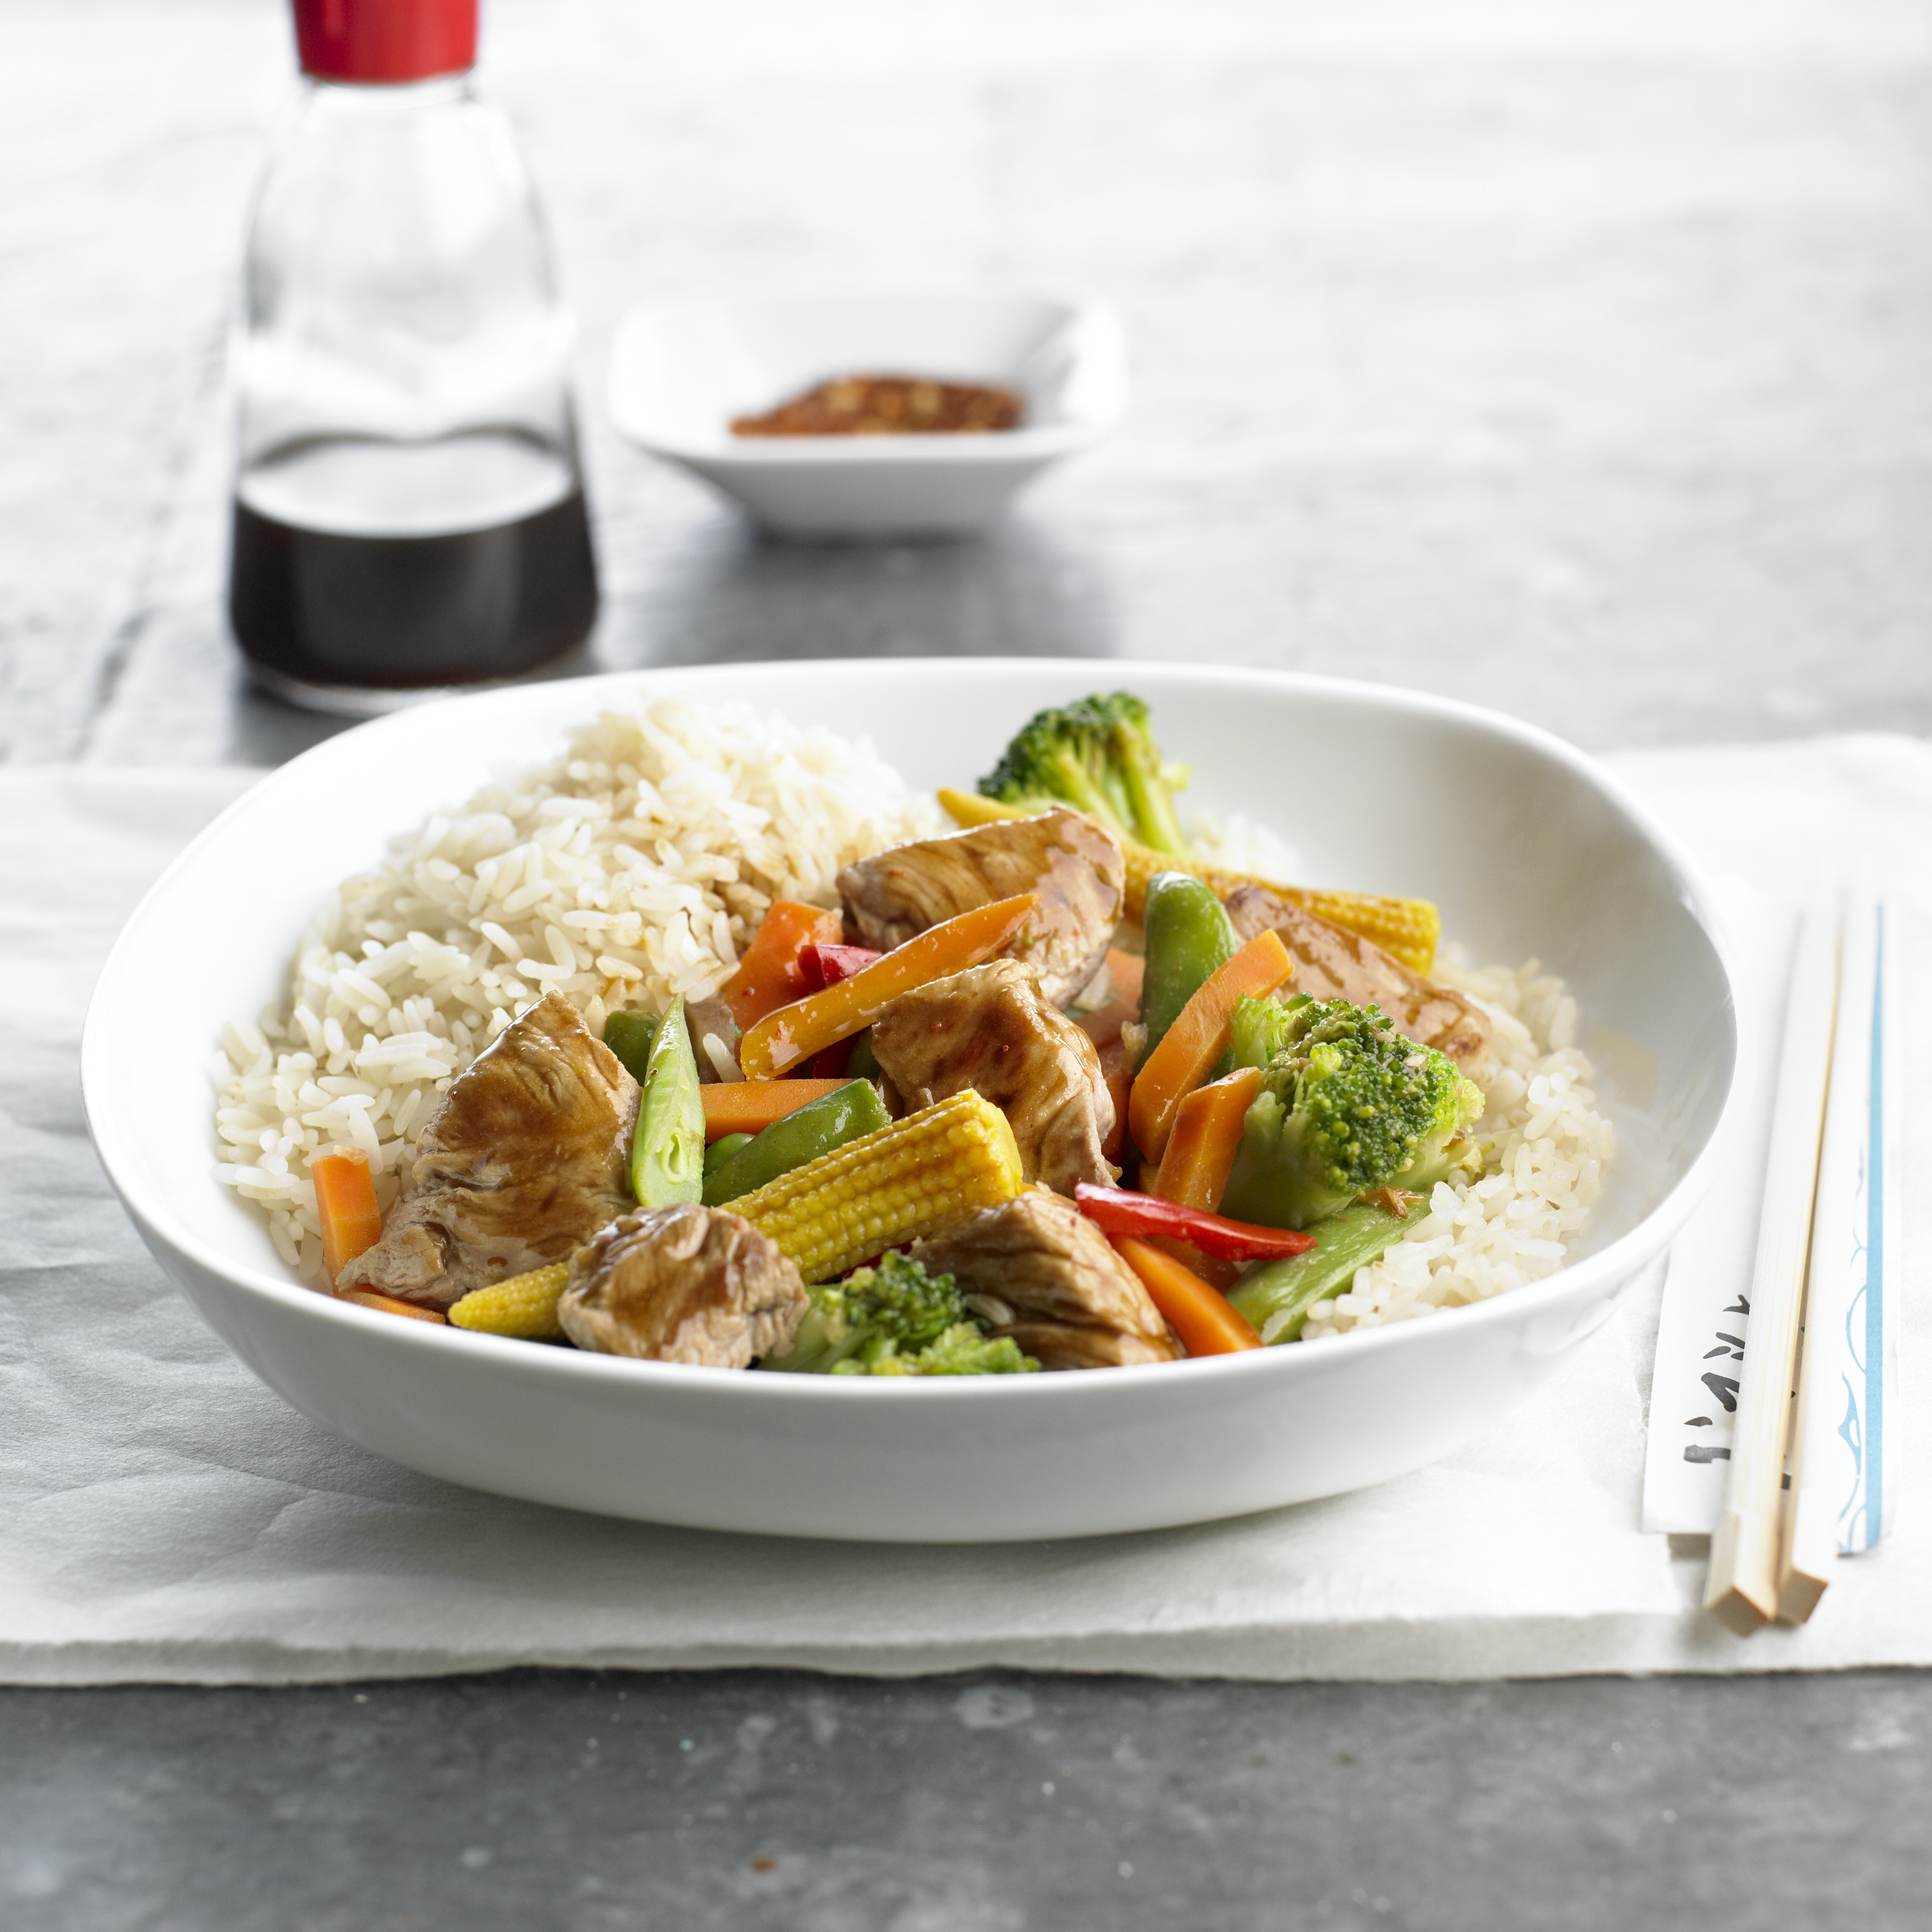 pork and peanut stir fry stir fried pork with ginger stir fry pork ...